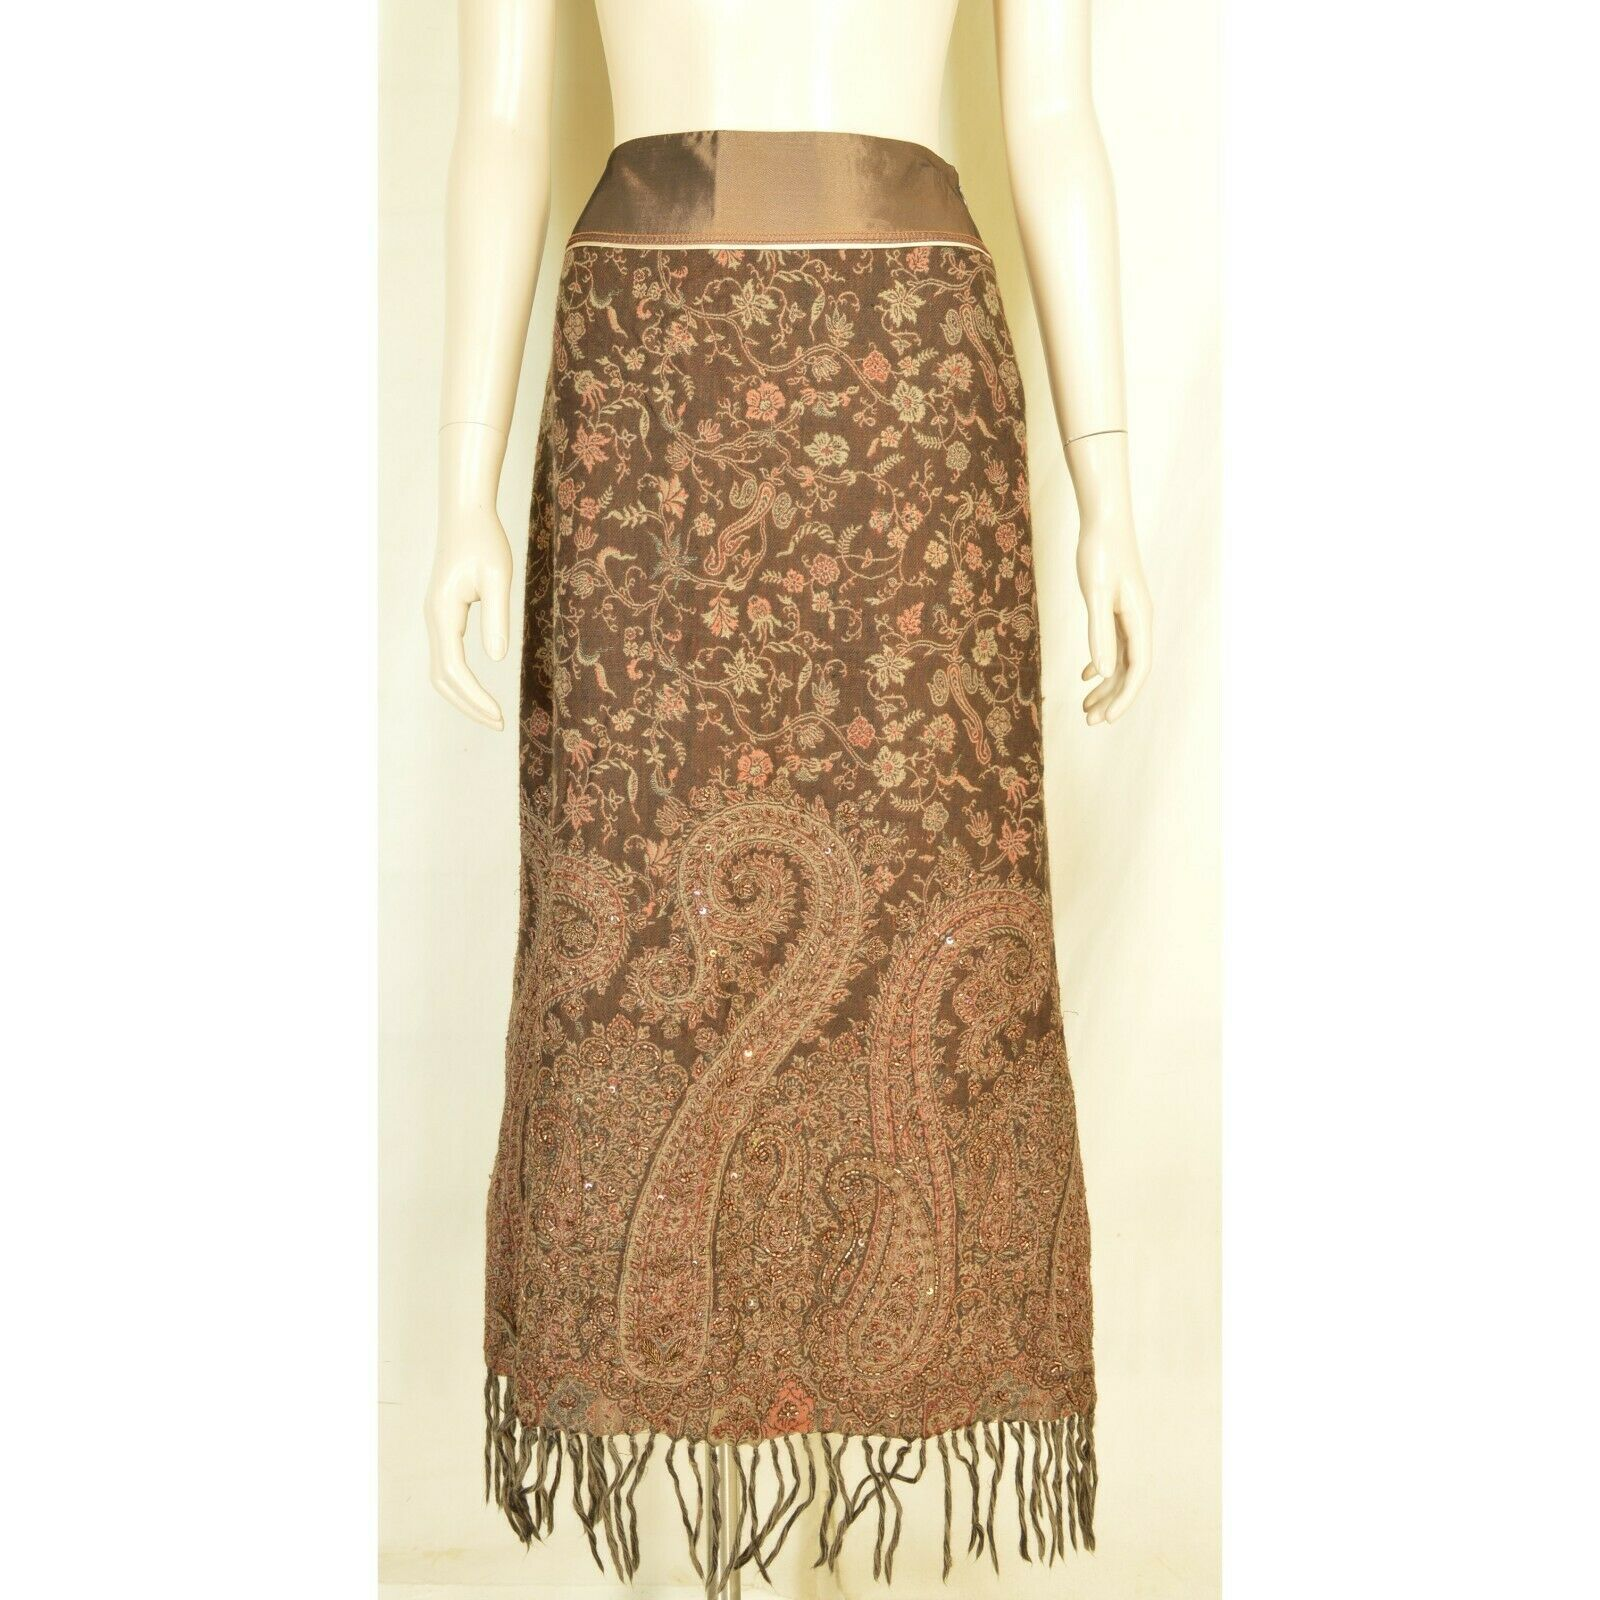 Schumacher skirt SZ S pencil brown paisley beading fringe at bottom 100% wool It